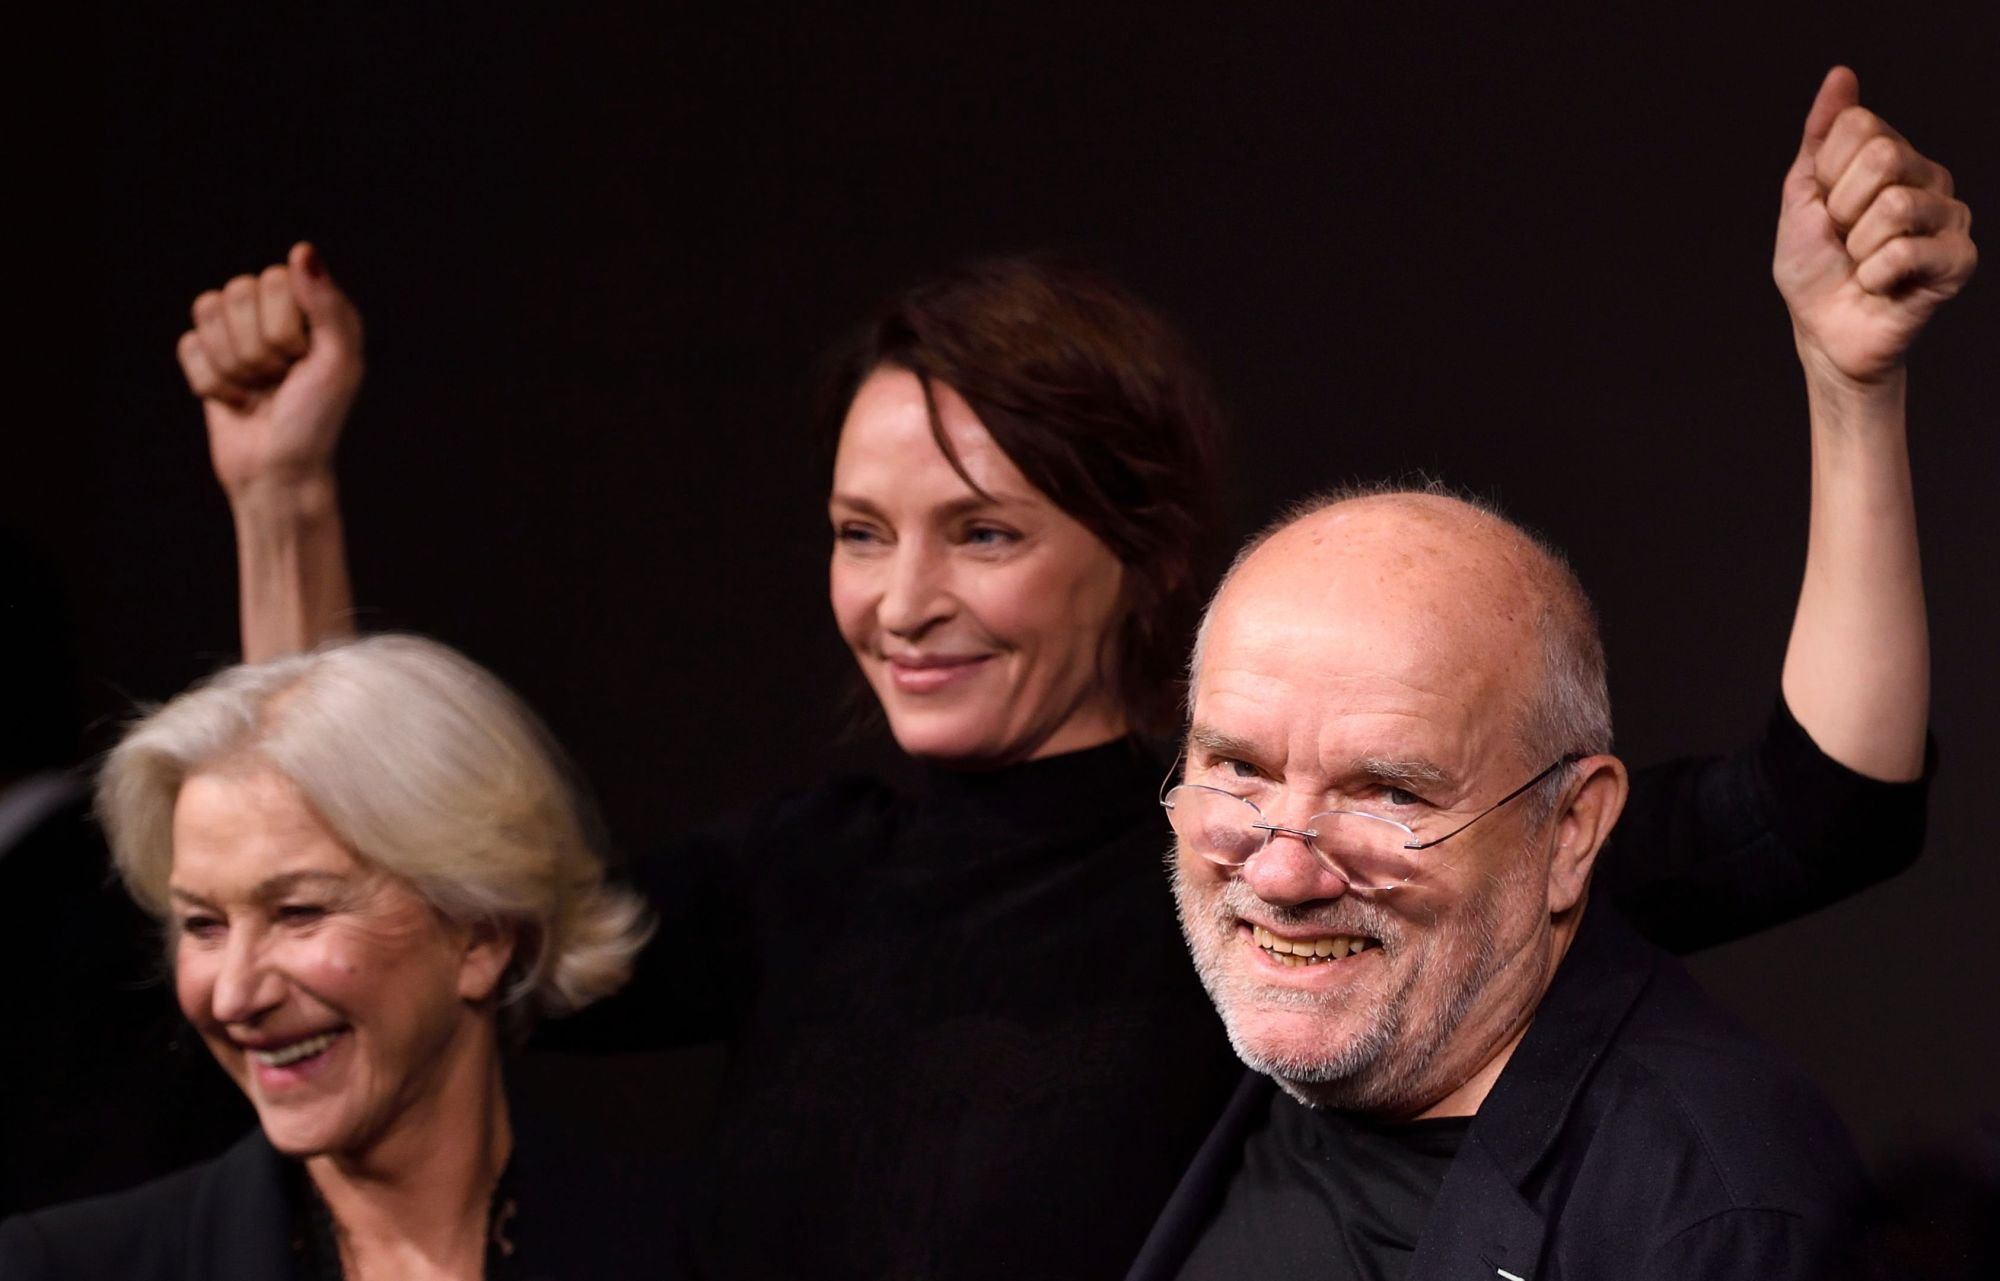 German photographer Peter Lindbergh, U.S. actress Uma Thurman (center) and British actress Helen Mirren pose during the presentation of the 2017 Pirelli calendar in Paris. Lindbergh, the German photographer credited with launching the careers of supermodels such as Naomi Campbell, Cindy Crawford and Linda Evangelista, has died aged 74, his family told AFP on Wednesday. | AFP-JIJI